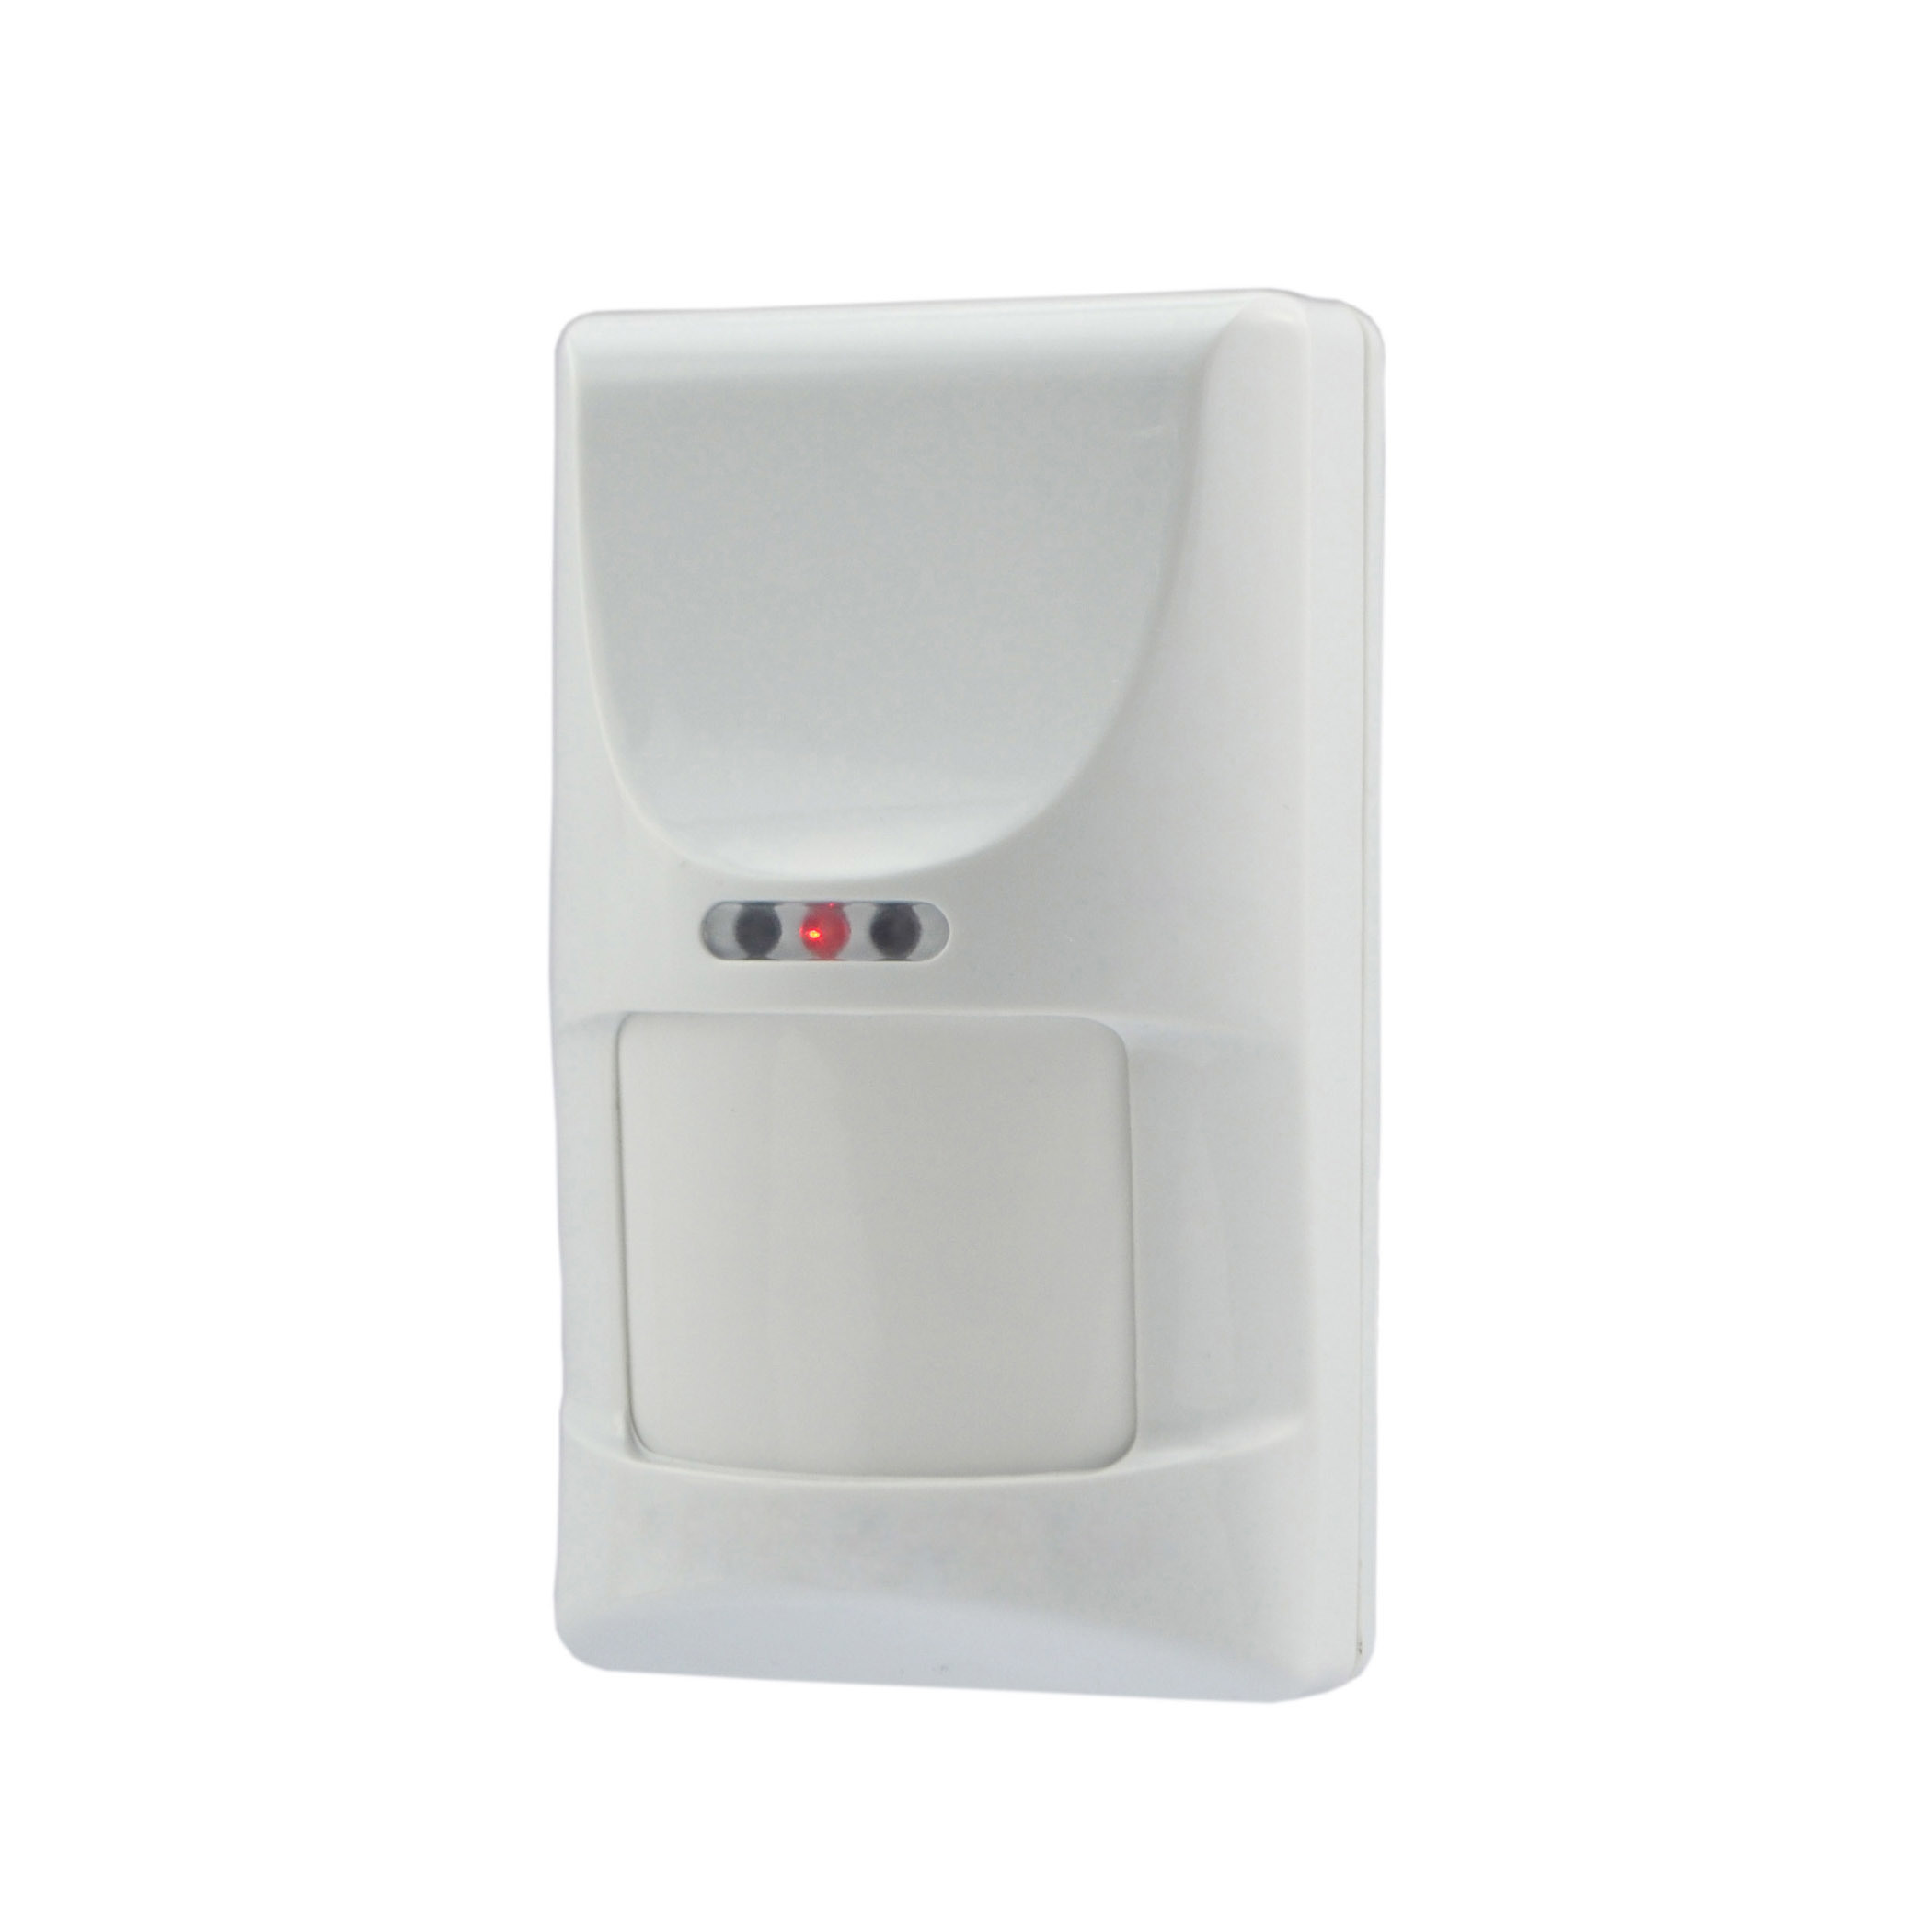 General PIR and Microwave Indoor Motion Sensor with Pet Immunity